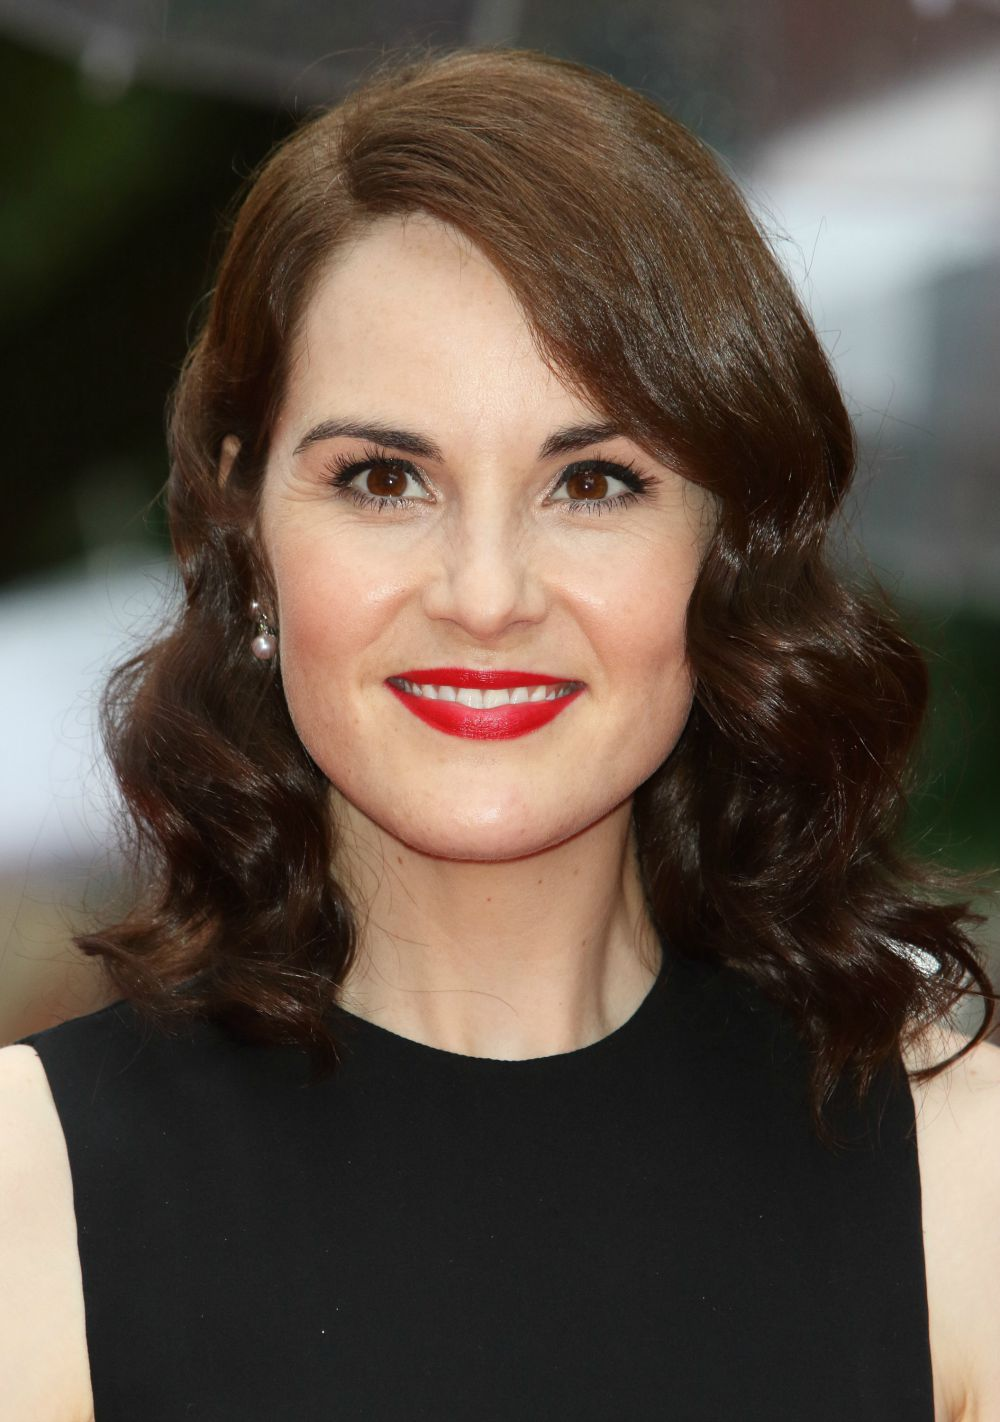 Hairstyle Ideas Featuring The Women Of Downton Abbey - Hairstyle designs ladies